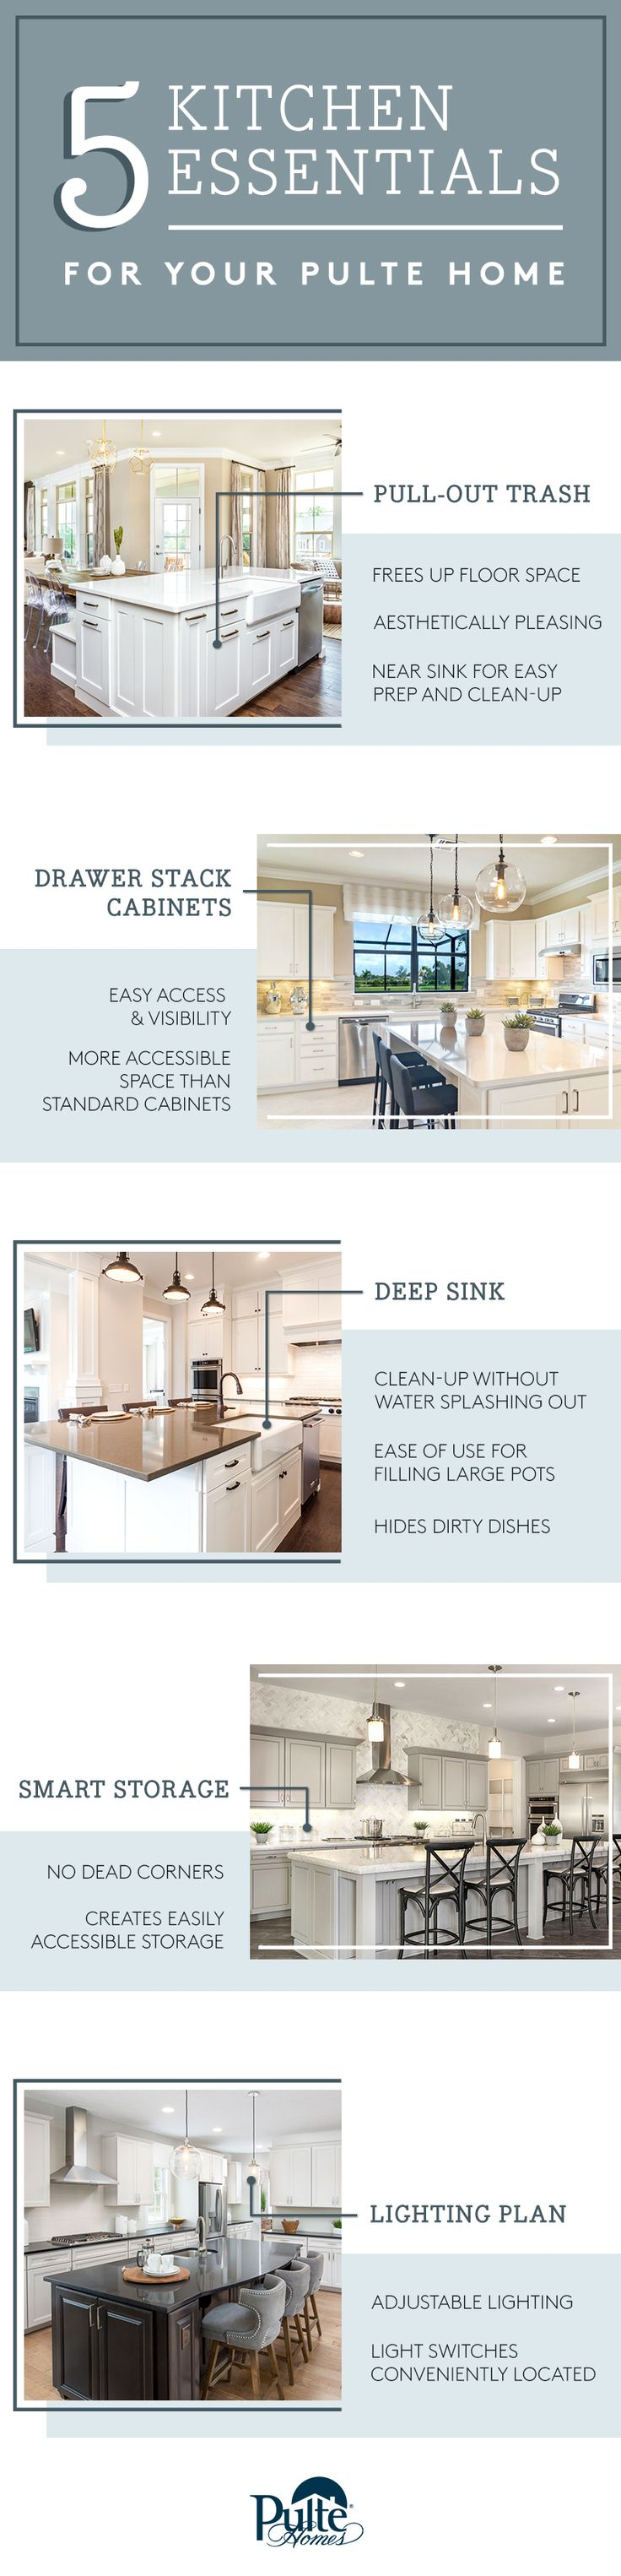 Masterful Bathrooms Pulte Homes Designed With Innovation In Mind From Smart Storage To Deep Sinks To Beautiful Lighting